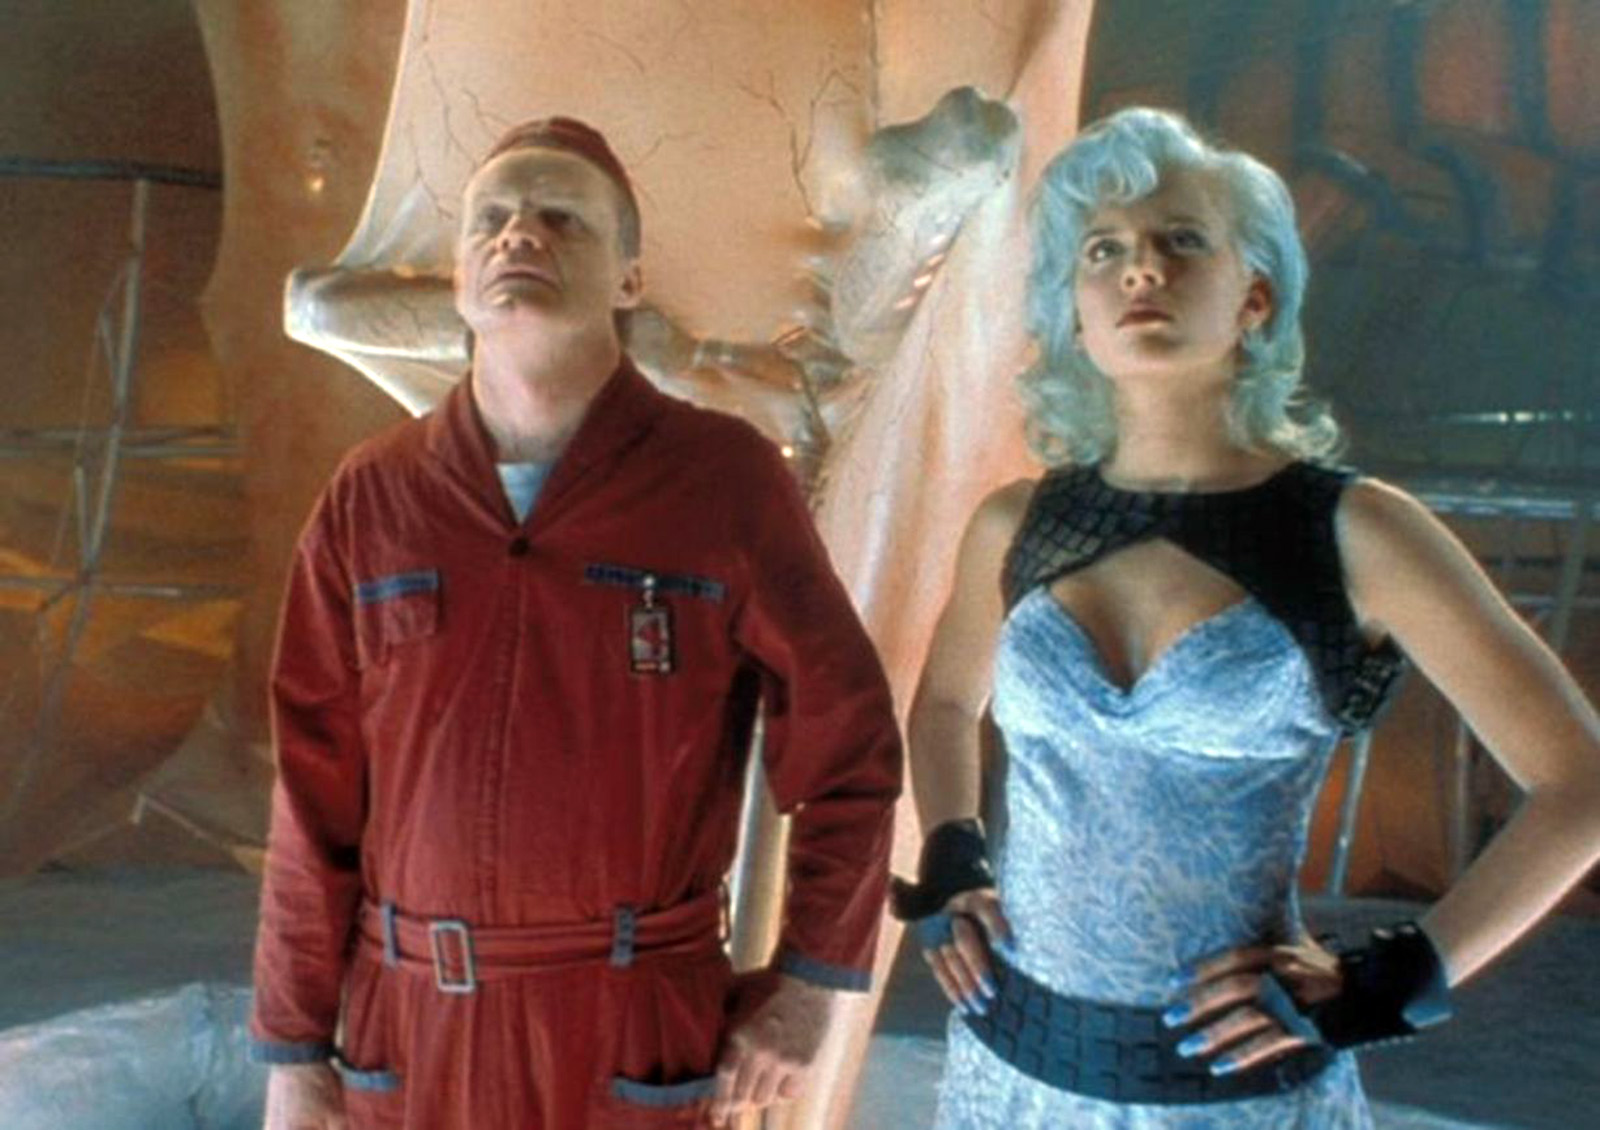 David Berman (actor) Wallpapers lexx eva habermann zev bellringer brian downey stanley h tweedle